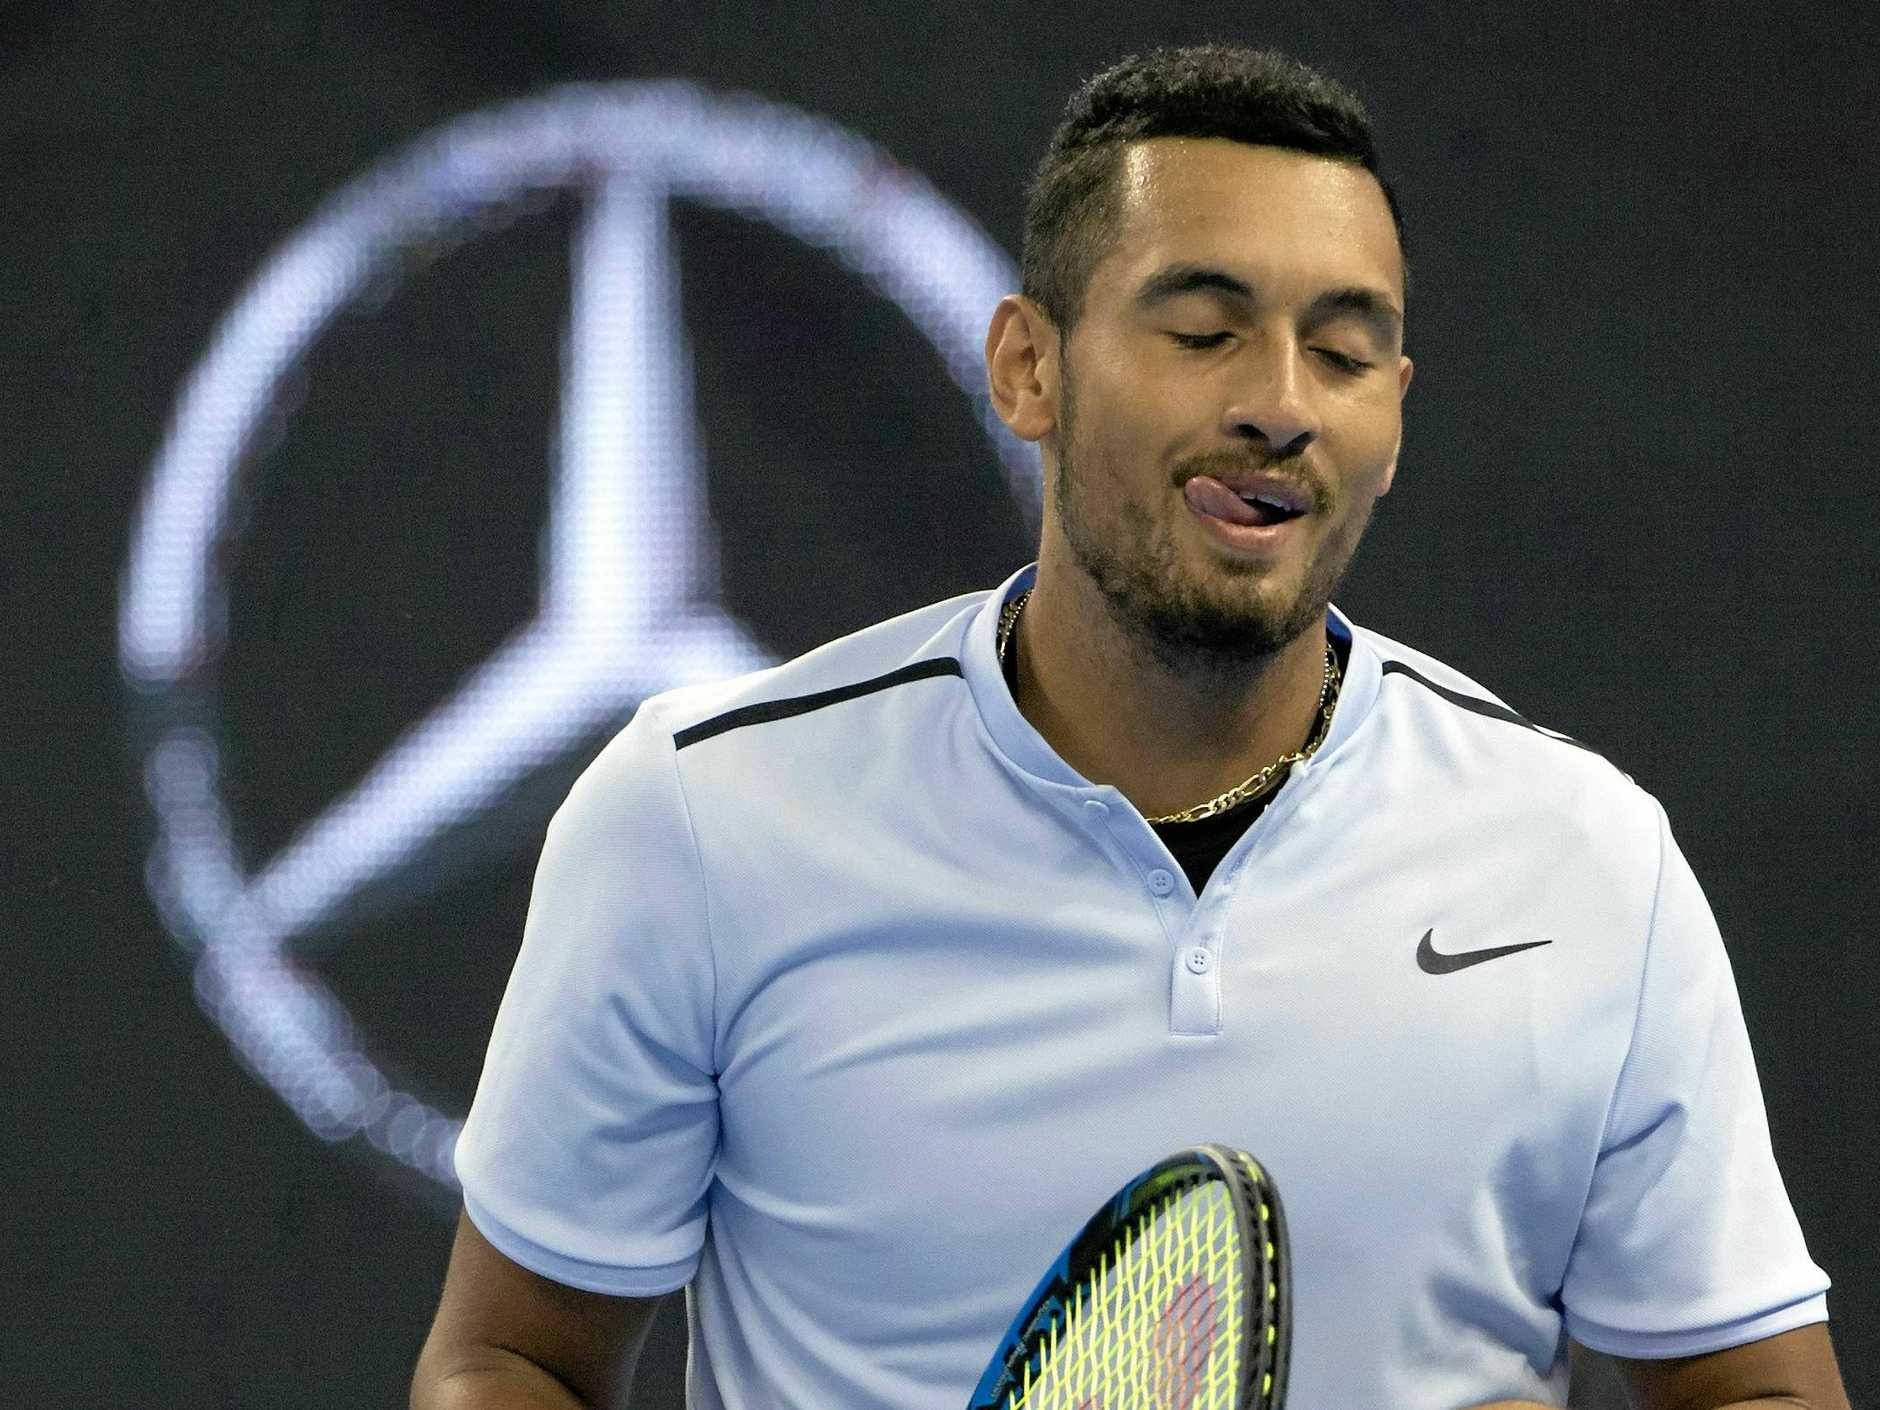 Kyrgios looks relaxed during his comfortable win over Zverev.